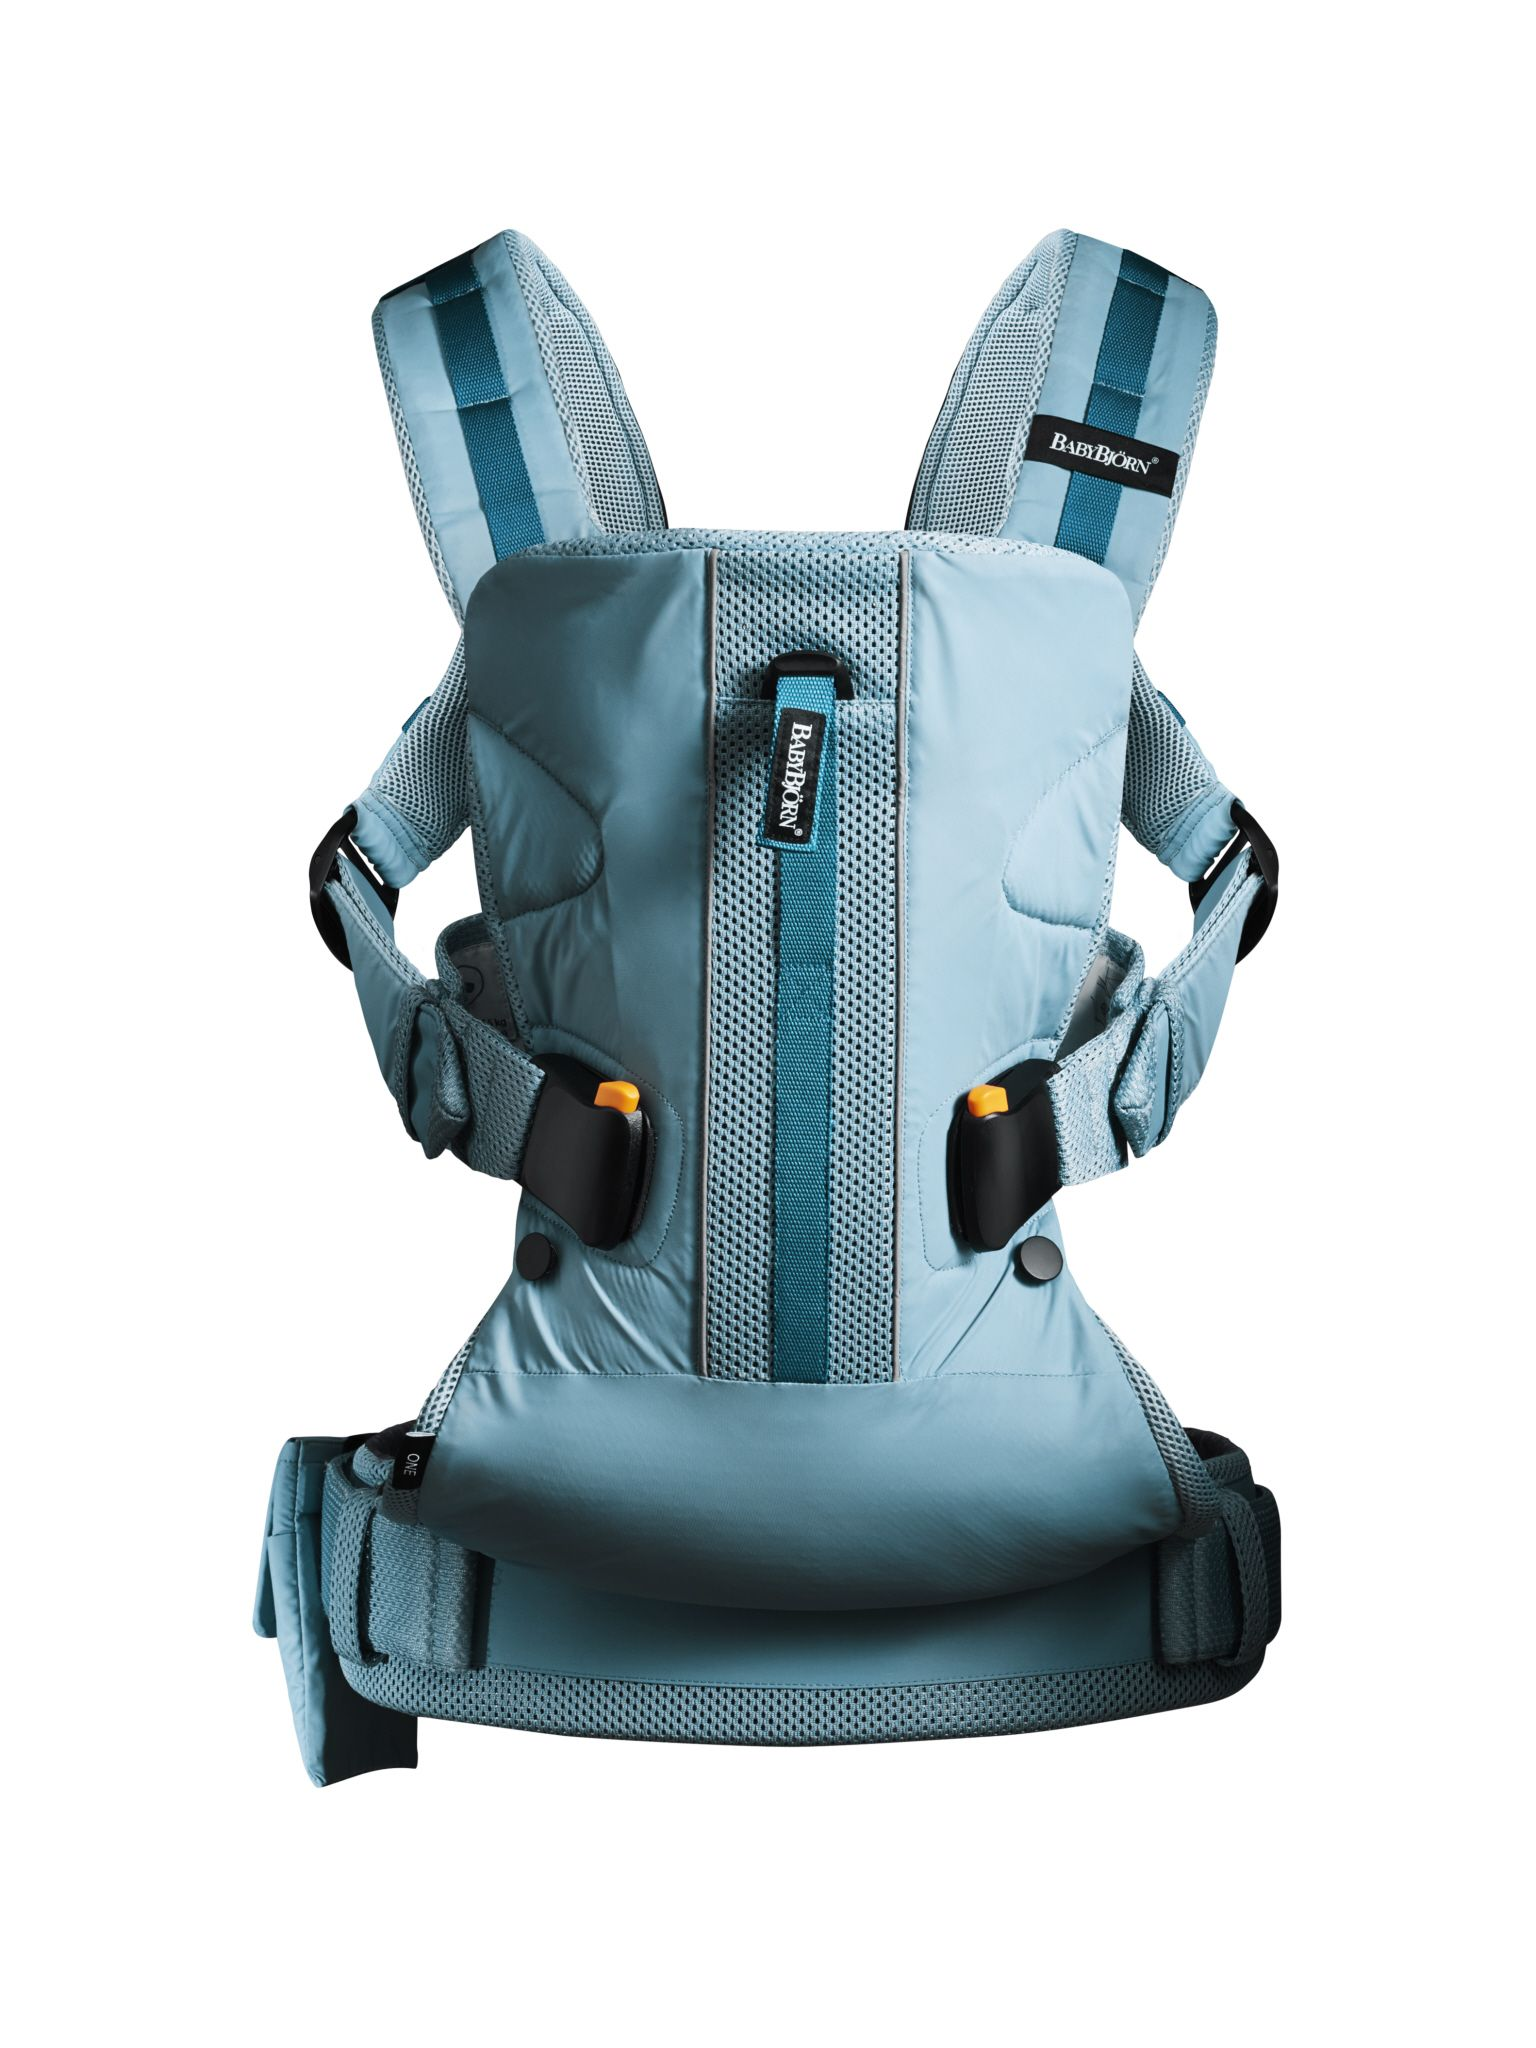 7a0ebd31116 BabyBjorn s New Hip Healthy Baby Carrier One Outdoors